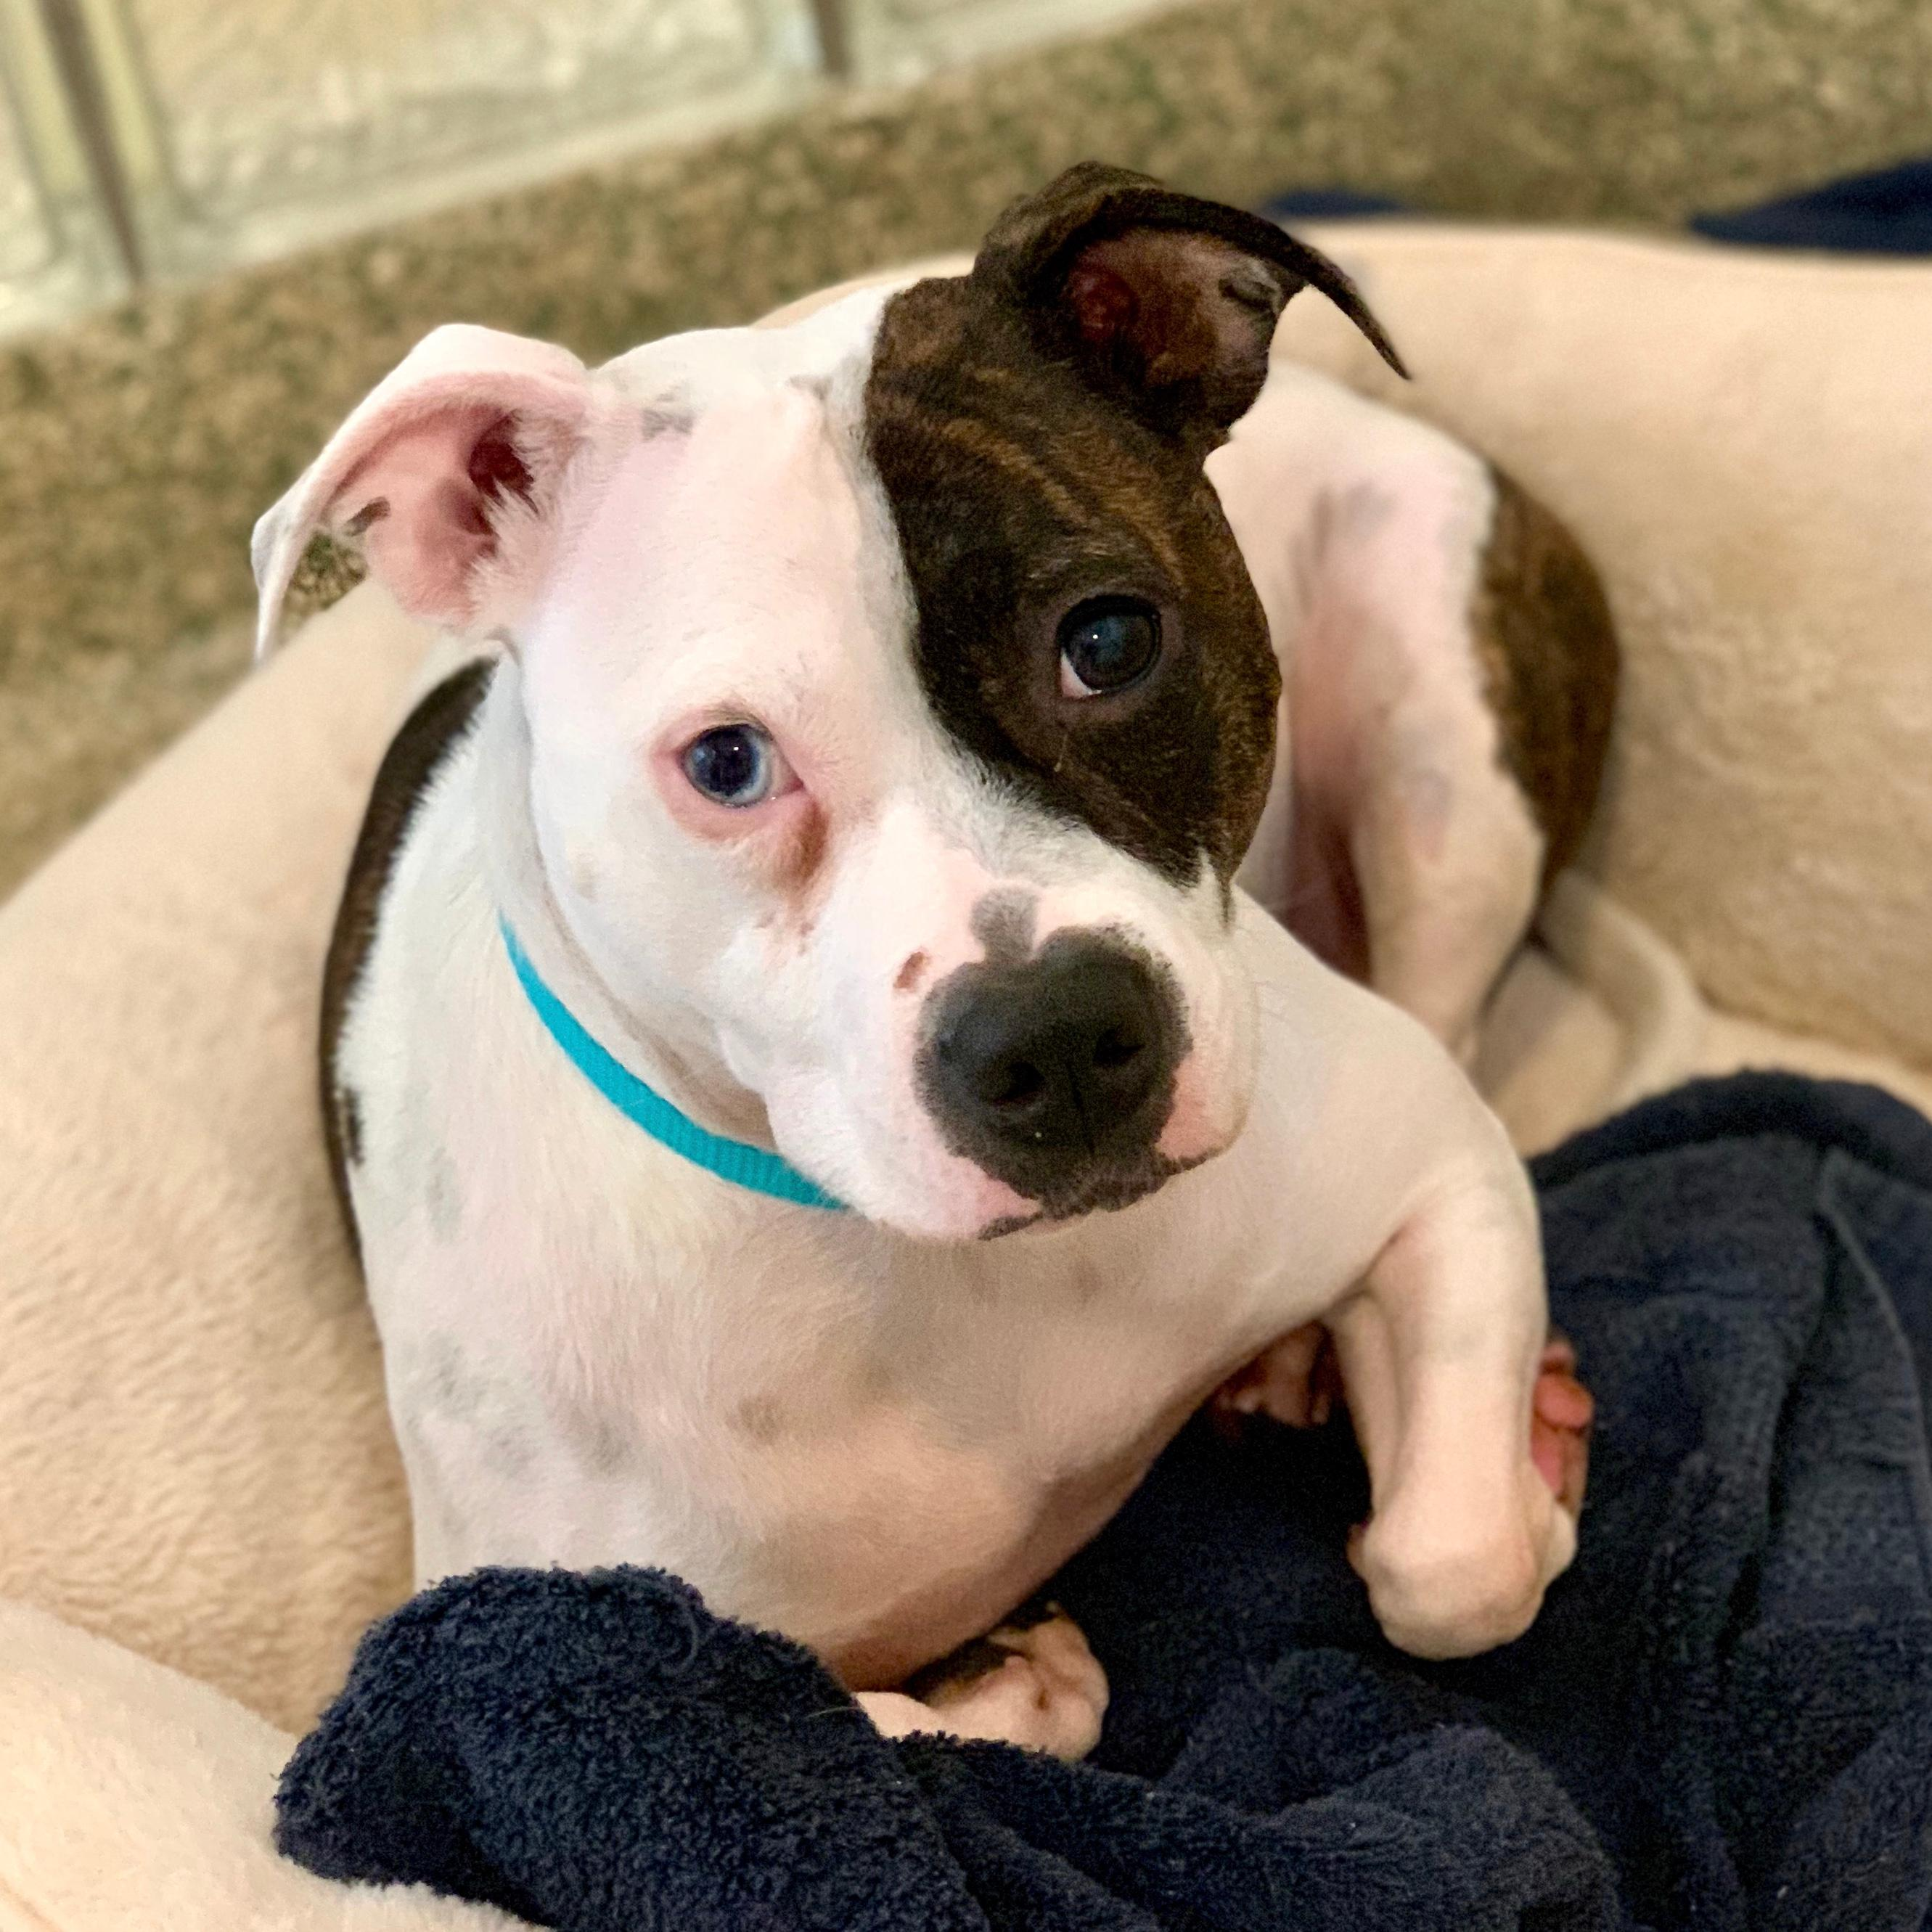 Coria is looking for a new home where she can enjoy plenty of cuddle time (her favorite activity) and a family that will help her continue to work on her confidence. (Image: Courtesy HRA){ }